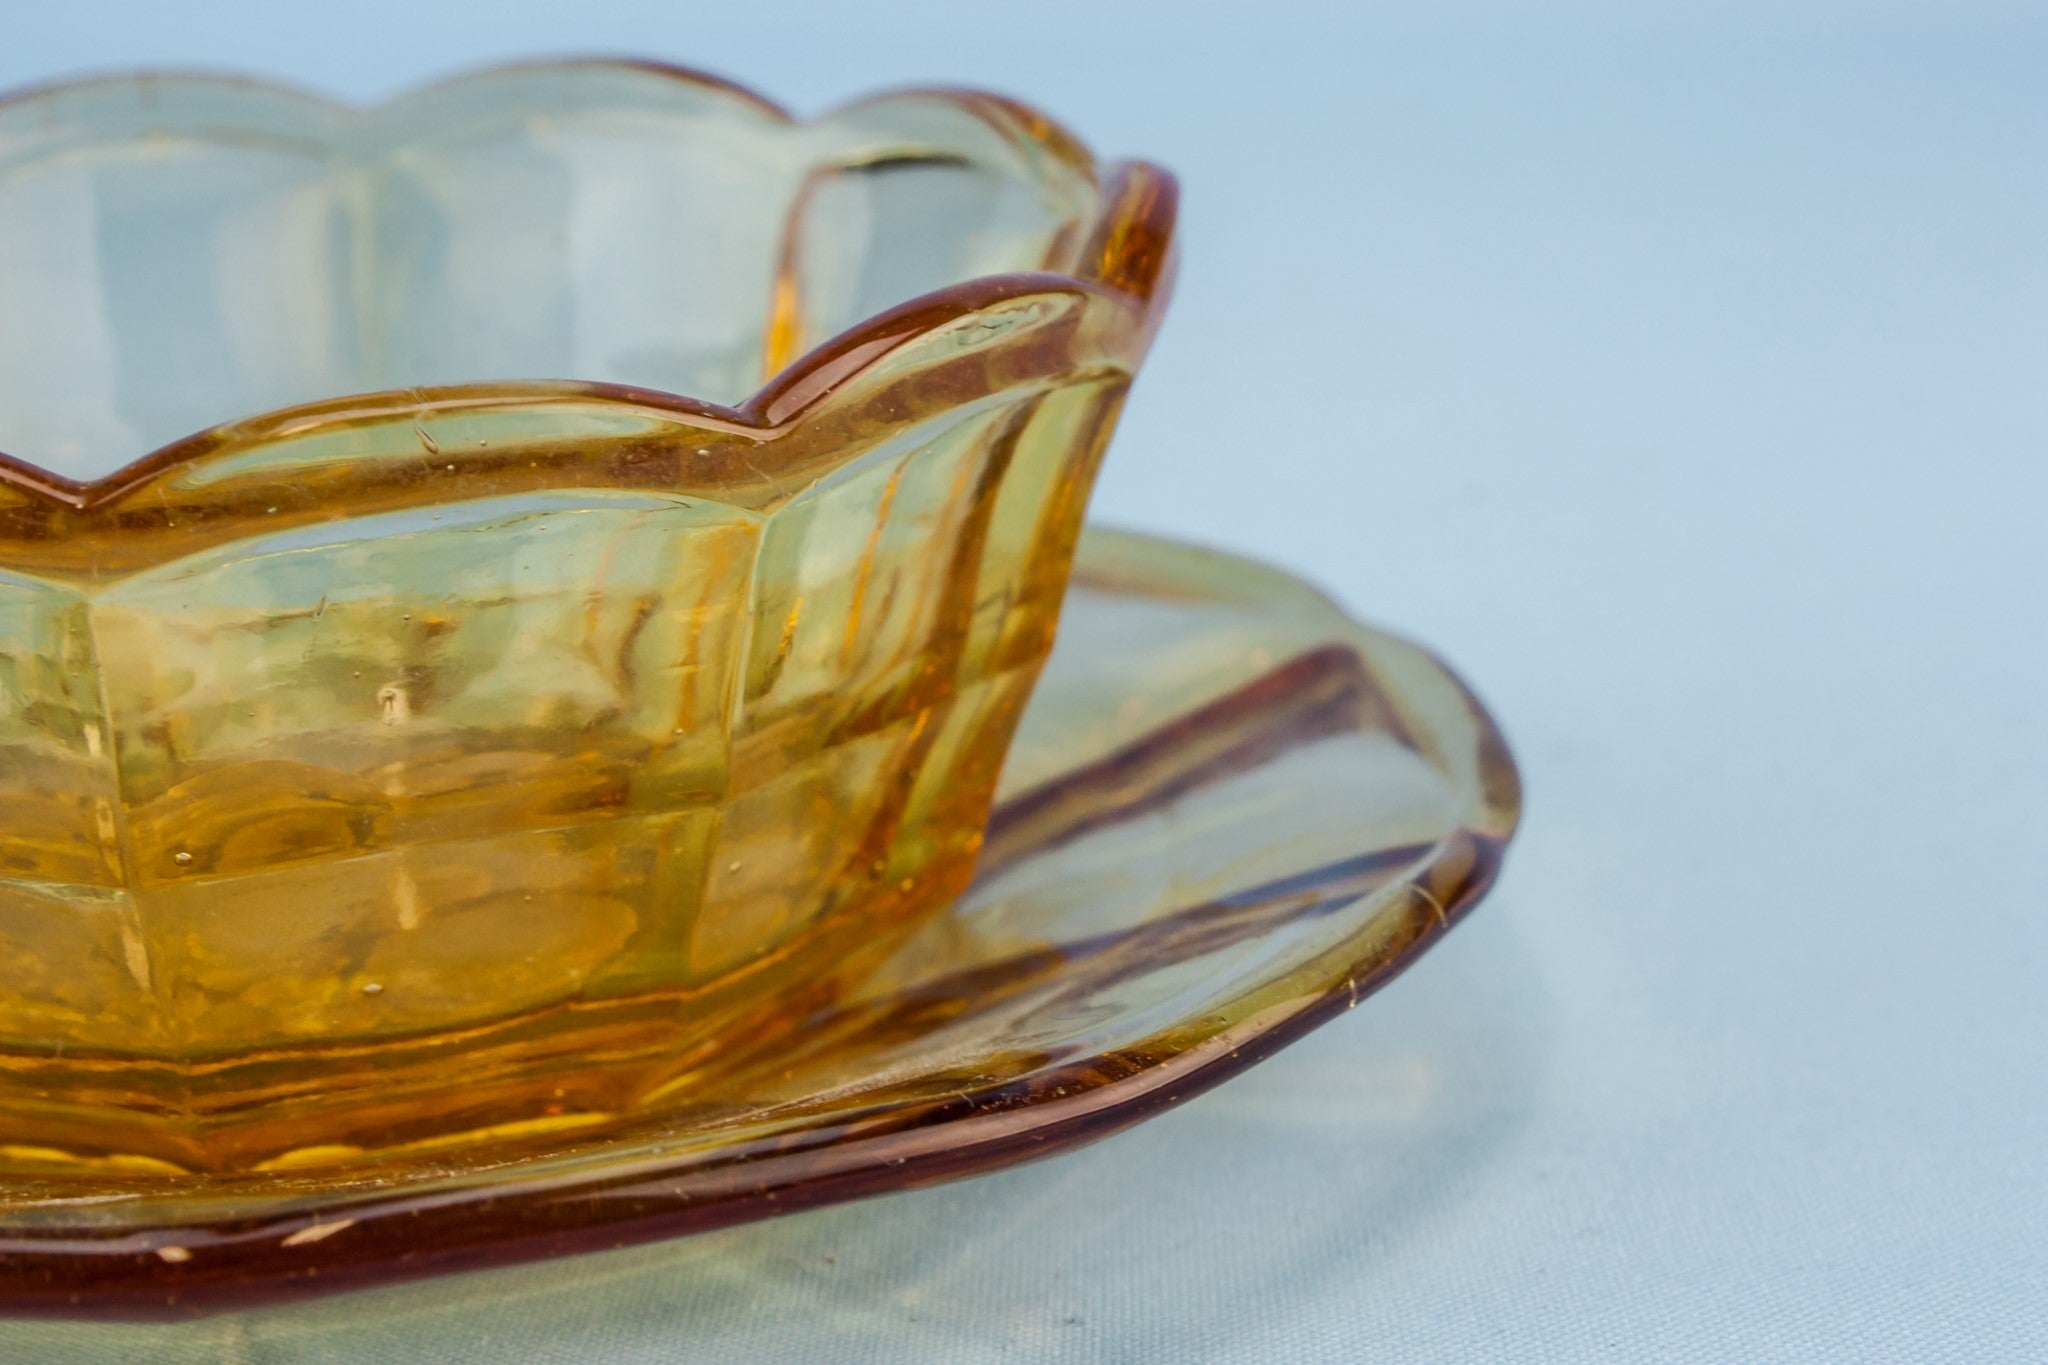 Amber glass small bowl